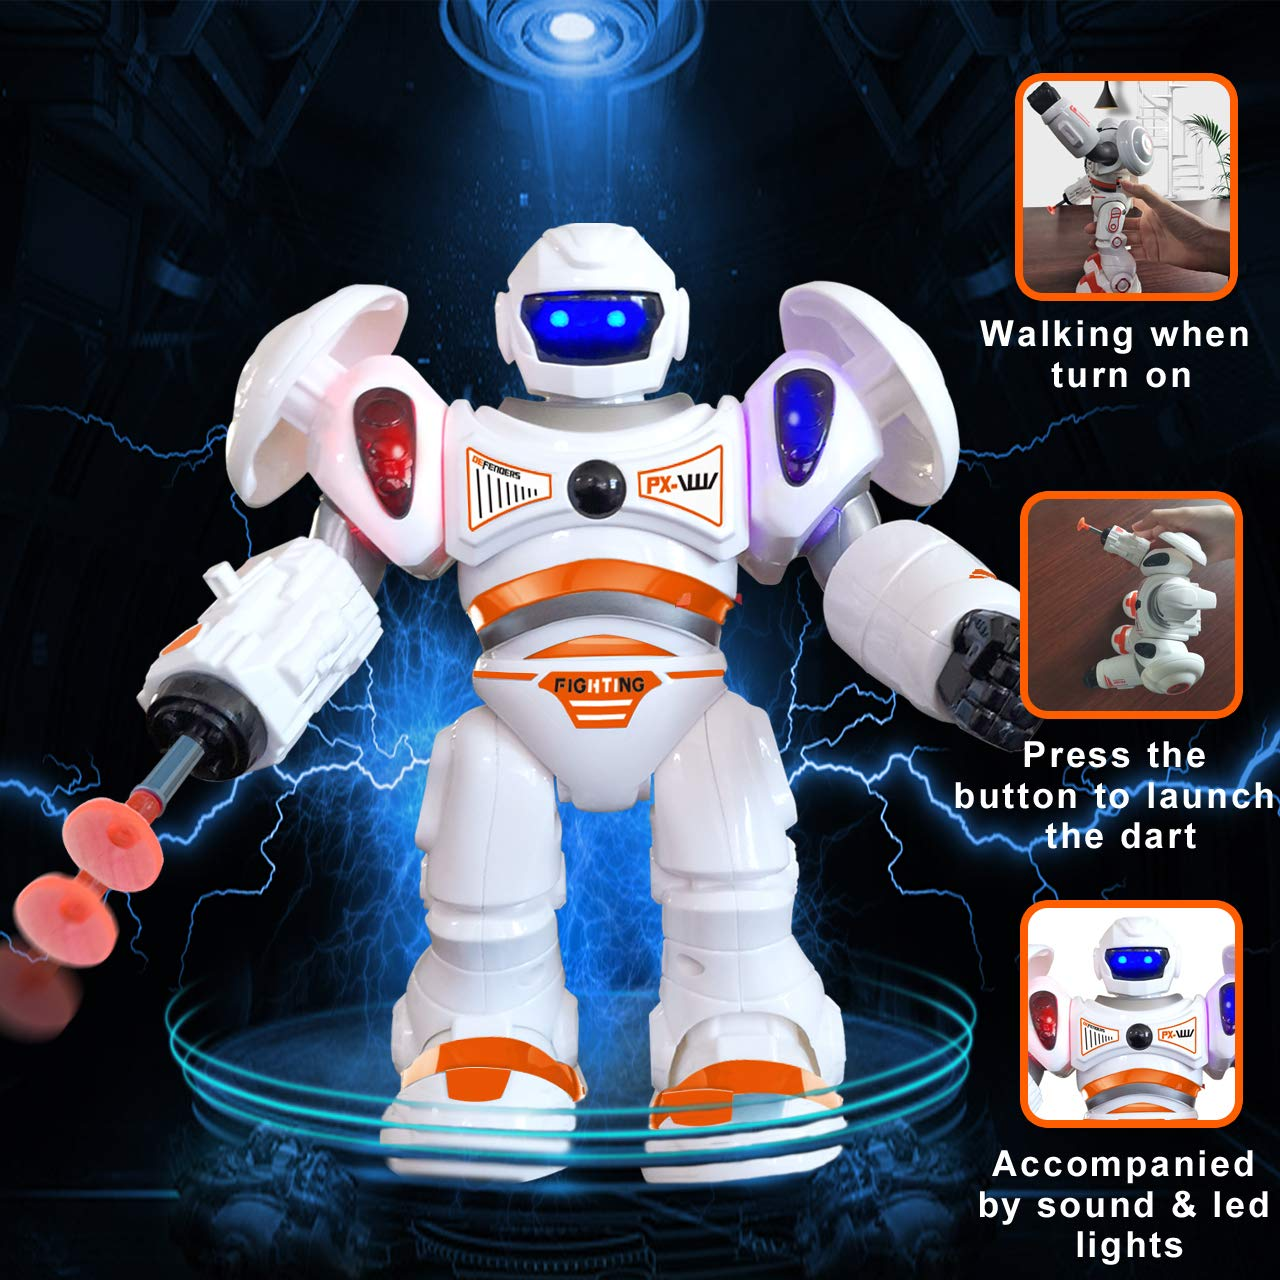 Robot Toys with Flexible Arm Blue Gifts2U Robots for Kids Sound /& Blue Red led Eyes Shoulder Robots for Boys with Launch Toy Darts Educational Toys for Kids 3 4 5 and Up Birthday